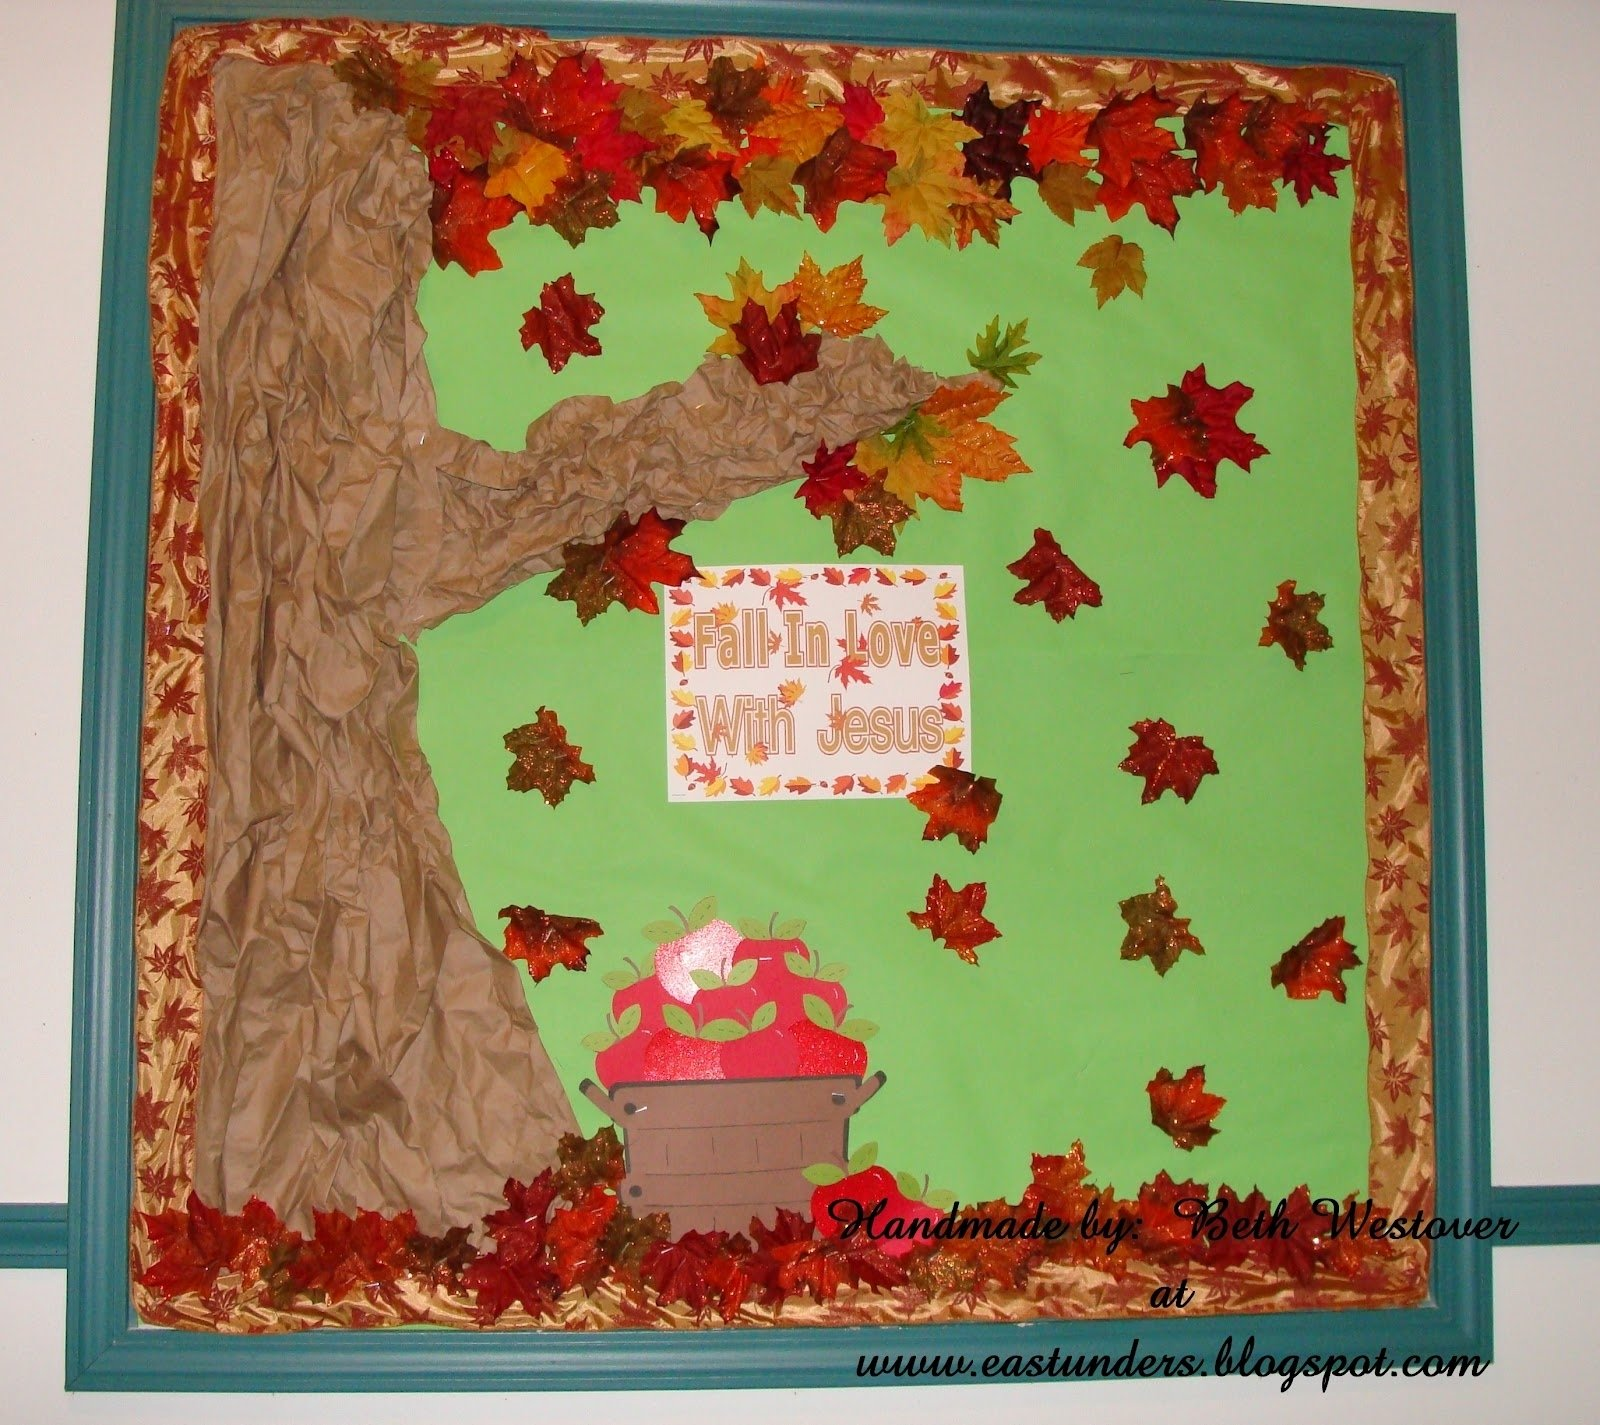 10 Most Recommended Christian Fall Bulletin Board Ideas 2021